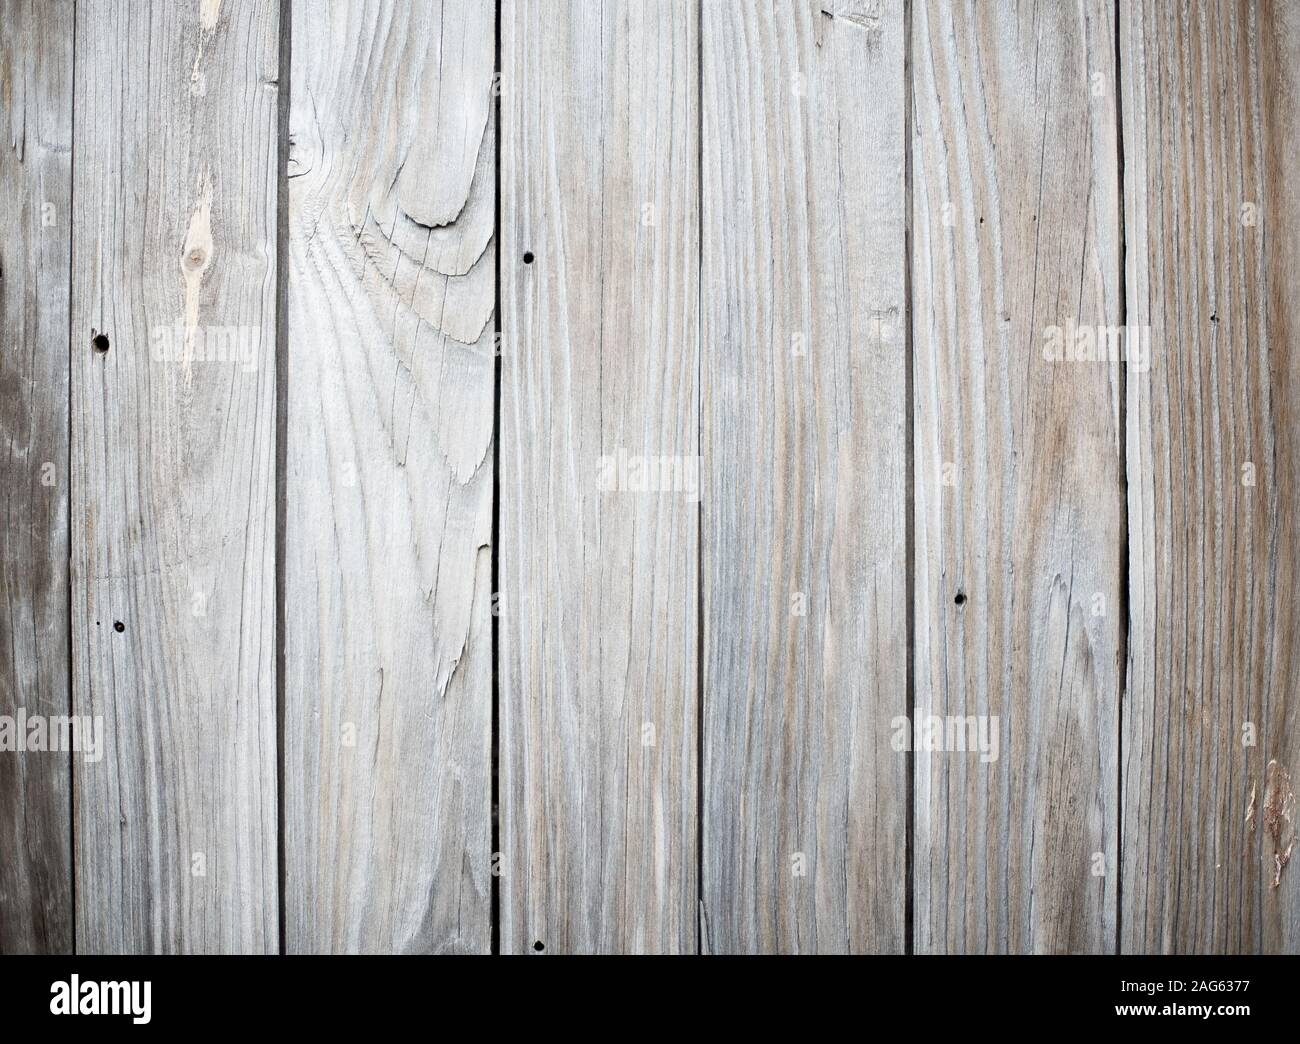 A Fence Made Of Vertical Wooden Planks Perfect For A Cool